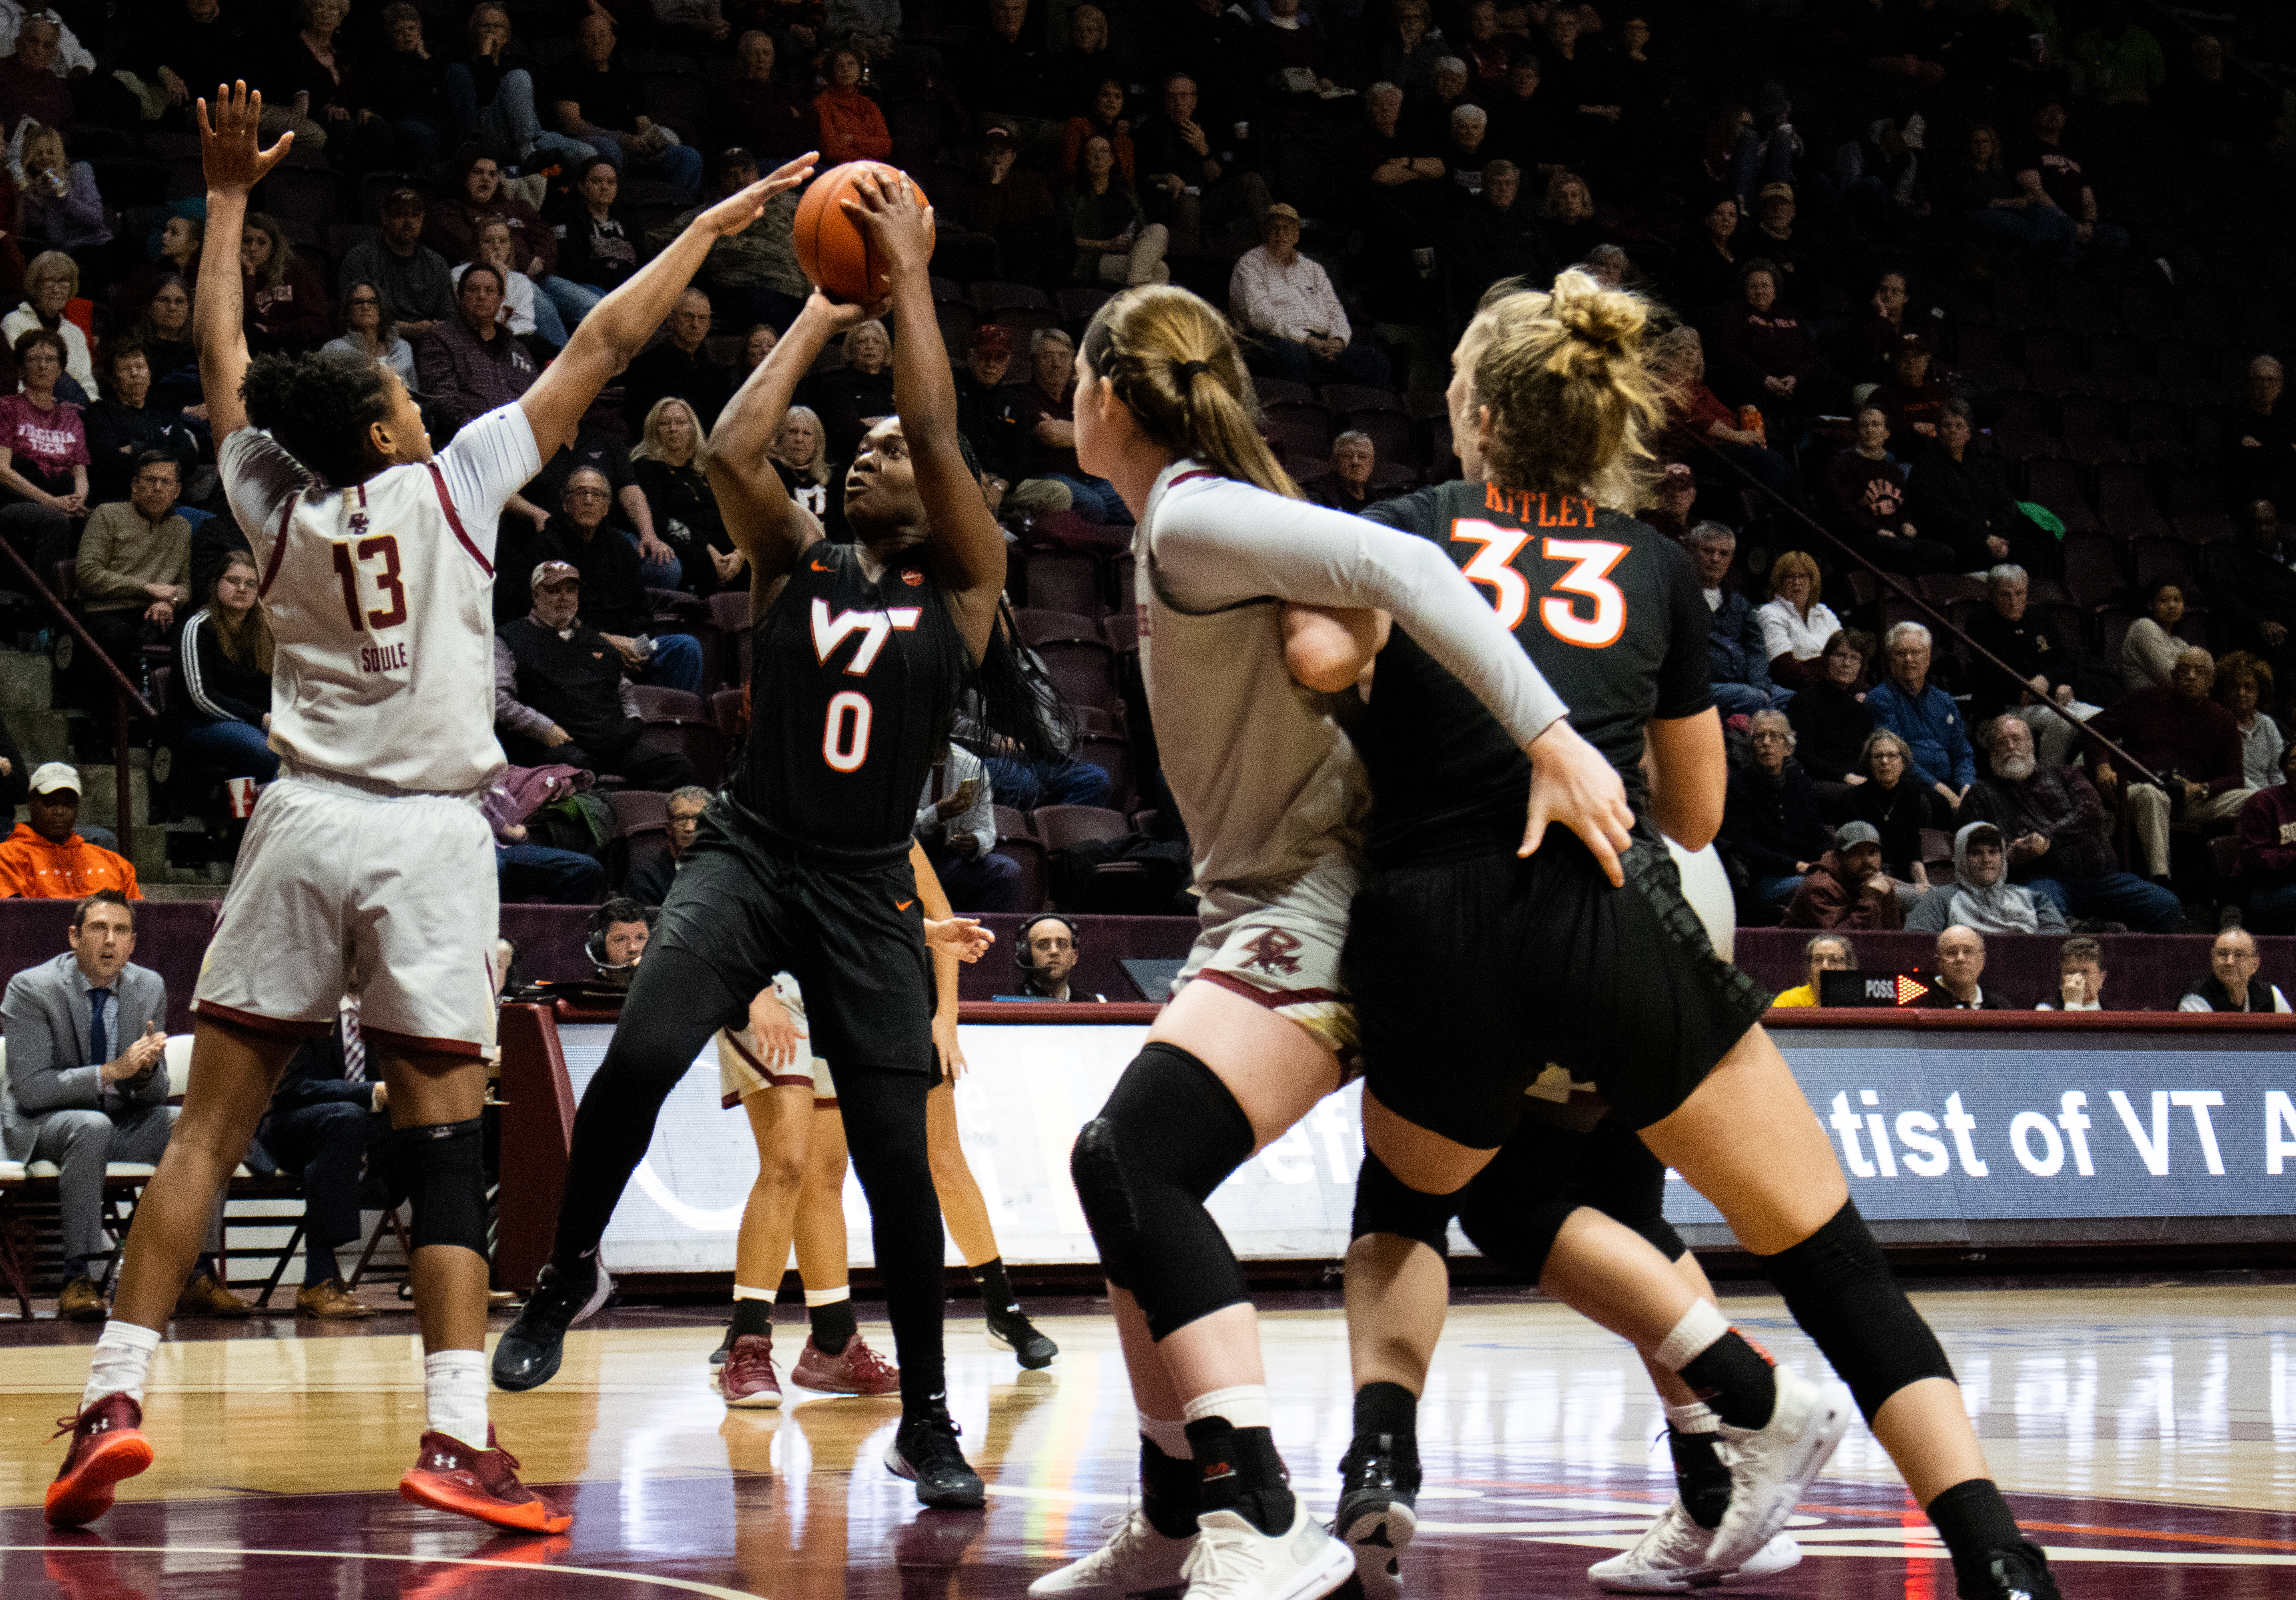 Virginia Tech Women's Basketball Dominates Boston College in 70-49 Victory